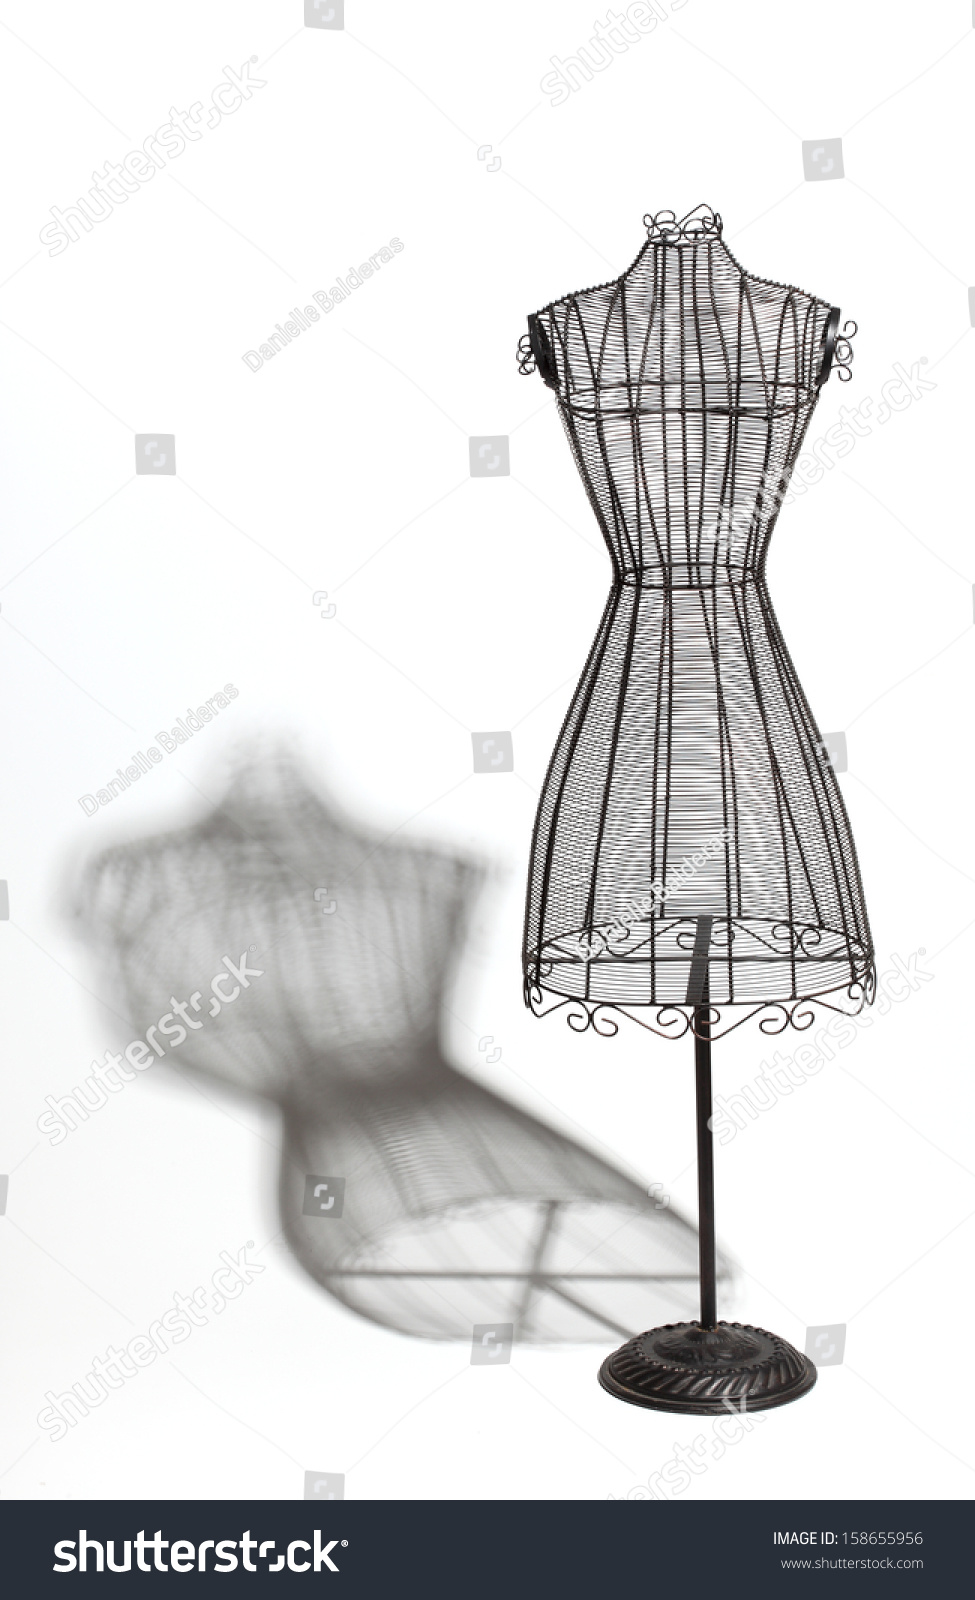 Royalty-free Vintage wire dress form with shadow. #158655956 Stock ...